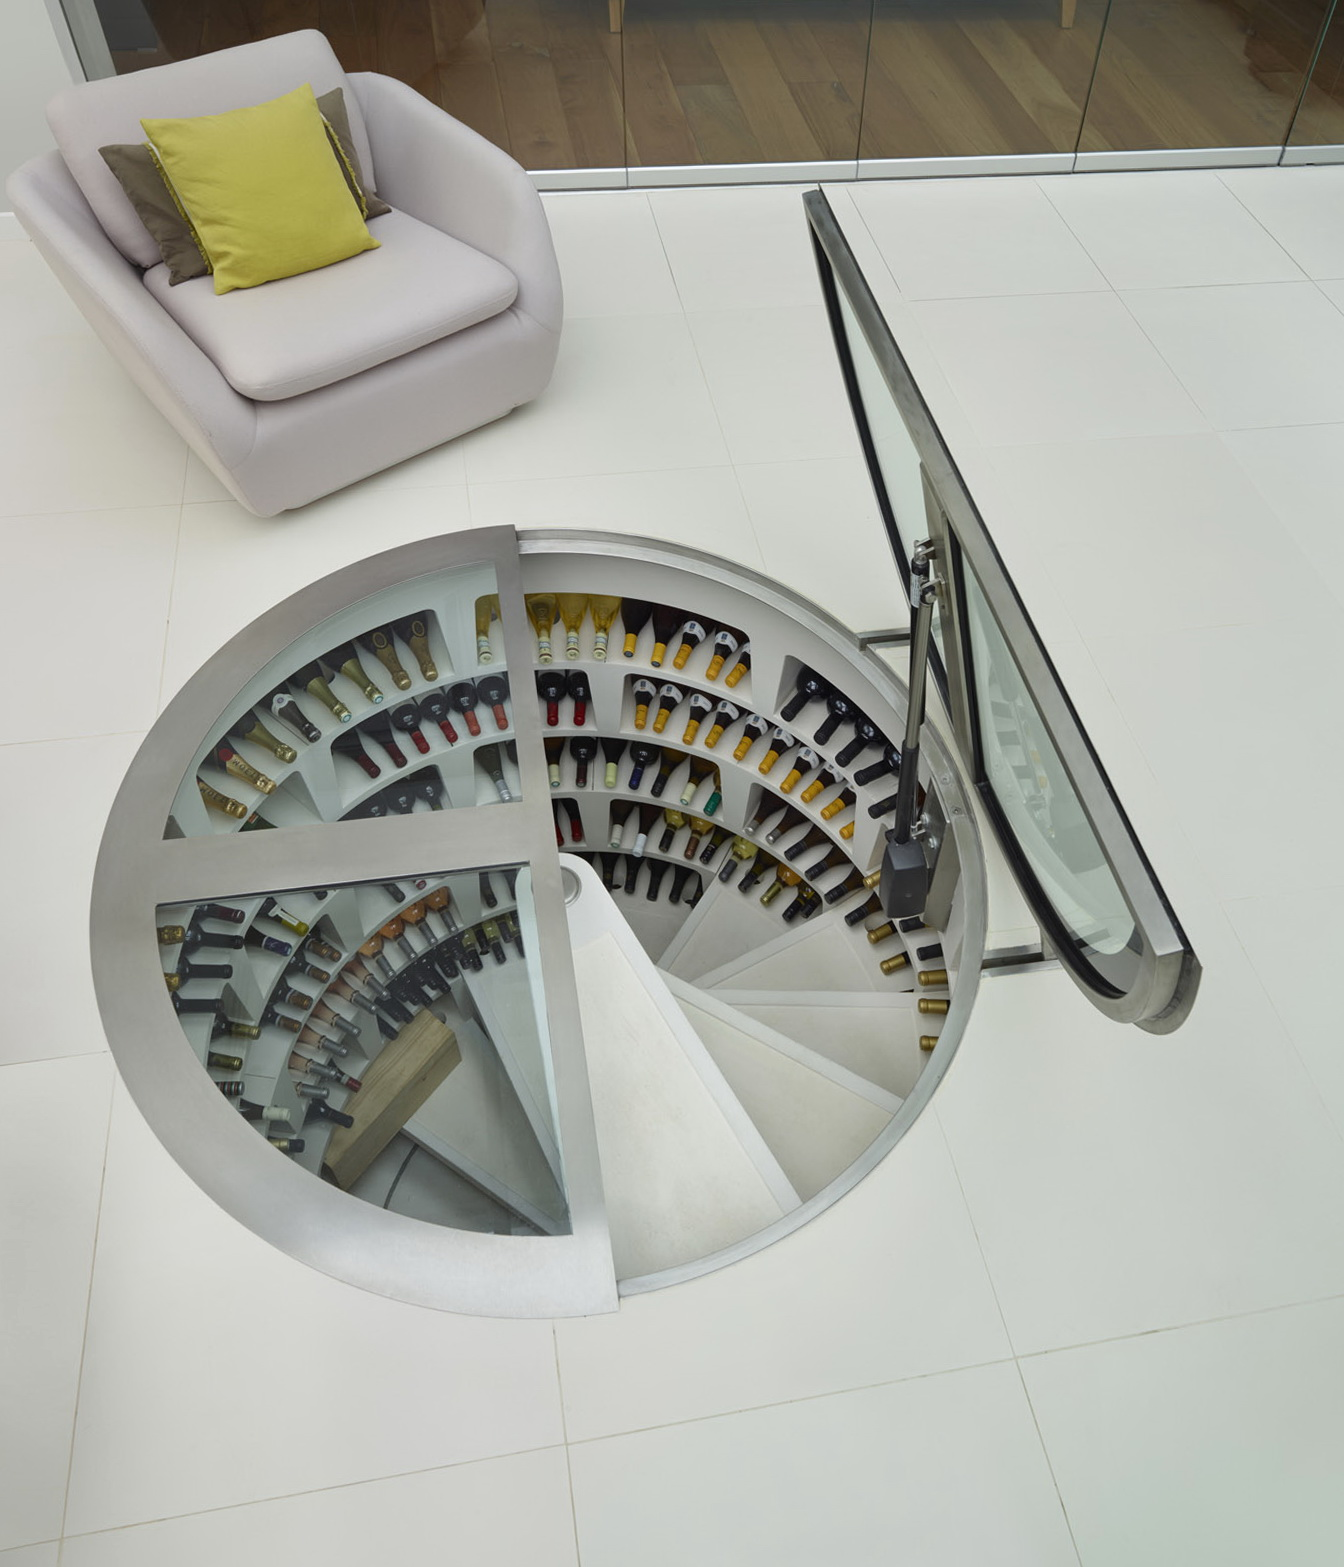 Spiral Wine Cellar Dimensions & Spiral Wine Cellar Dimensions | Home Design Ideas